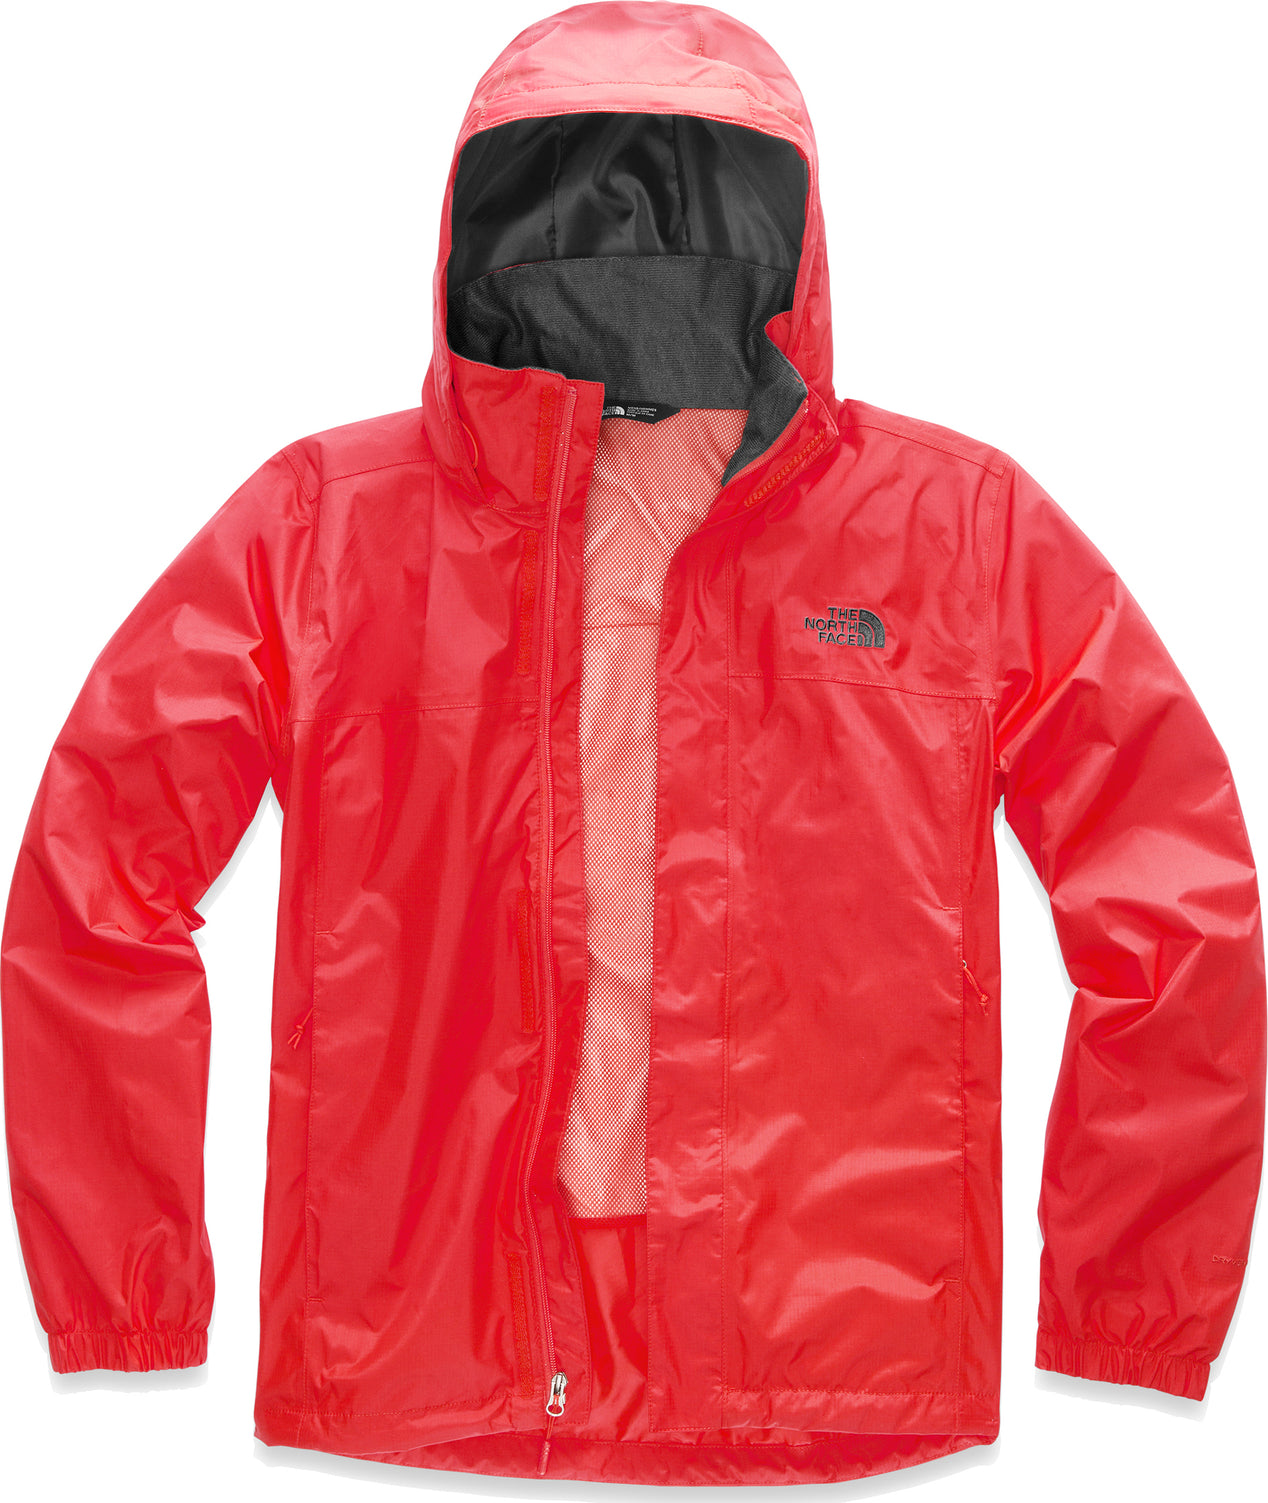 3588d6a5c61 The North Face Resolve 2 Jacket - Men's | Altitude Sports